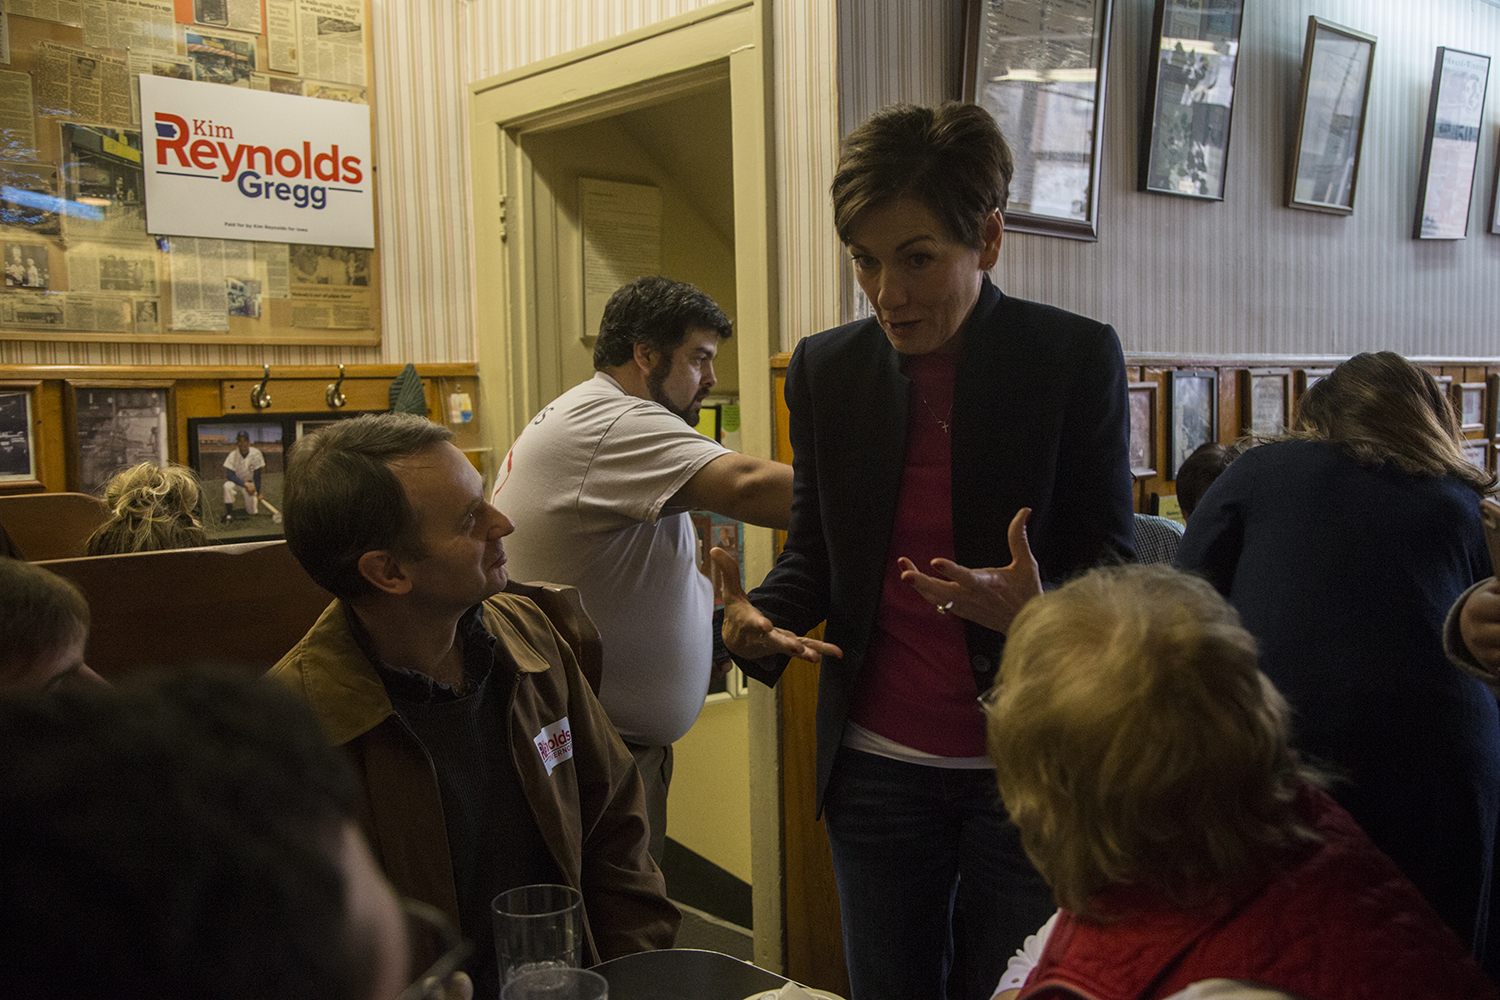 Kim Reynolds addresses supporters during her visit to the Hamburg Inn in Iowa City on Thursday Oct. 25, 2018. Reynolds visited with fans and addressed media questions about the upcoming elections.